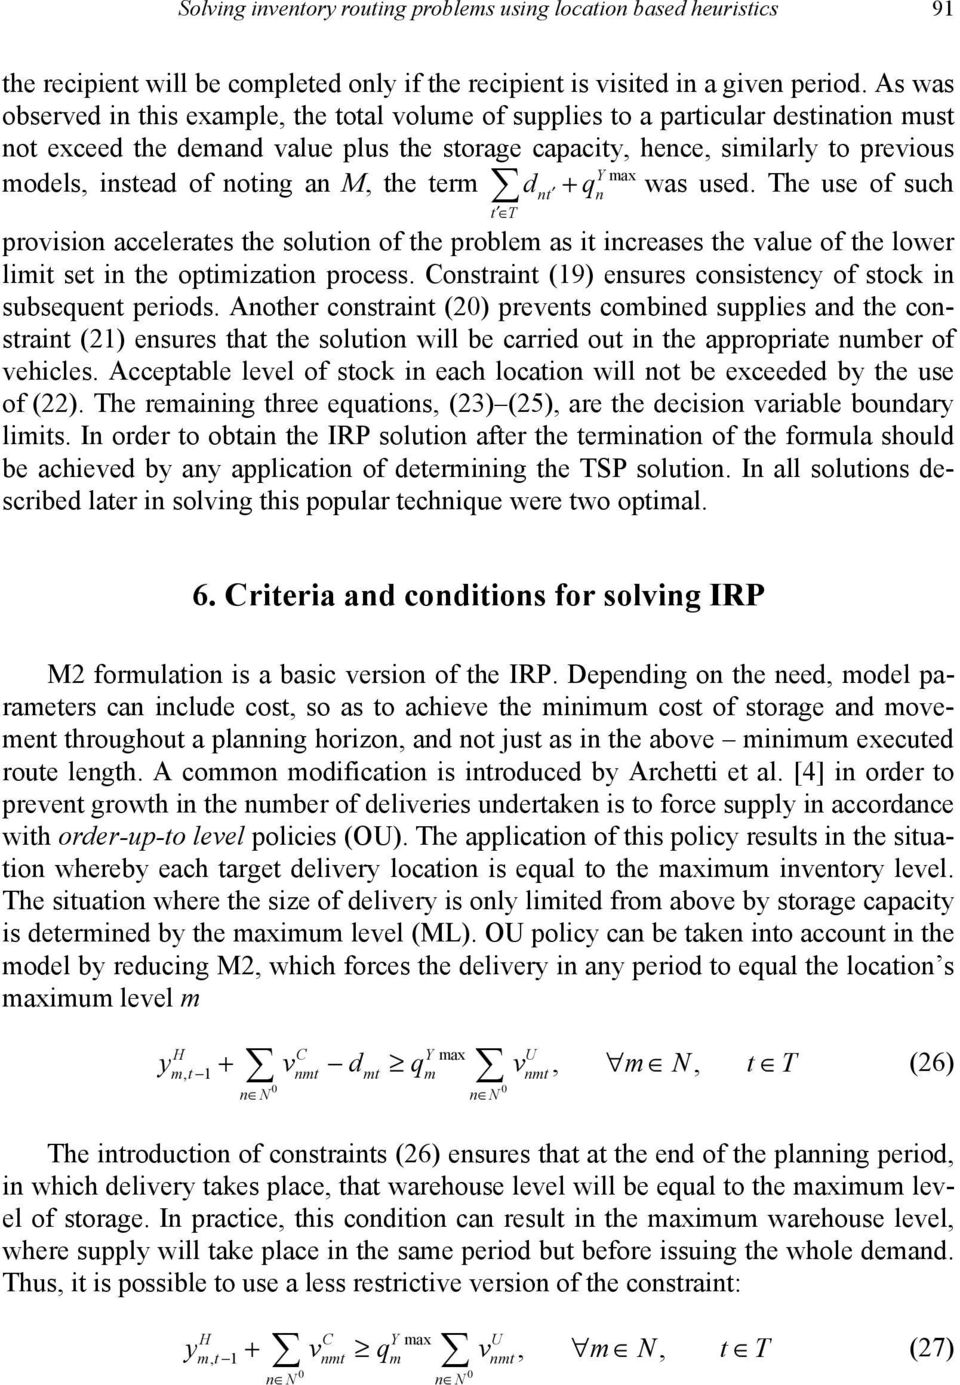 instead of noting an M, the term d + q was used. The use of such provision accelerates the solution of the problem as it increases the value of the lower limit set in the optimization process.